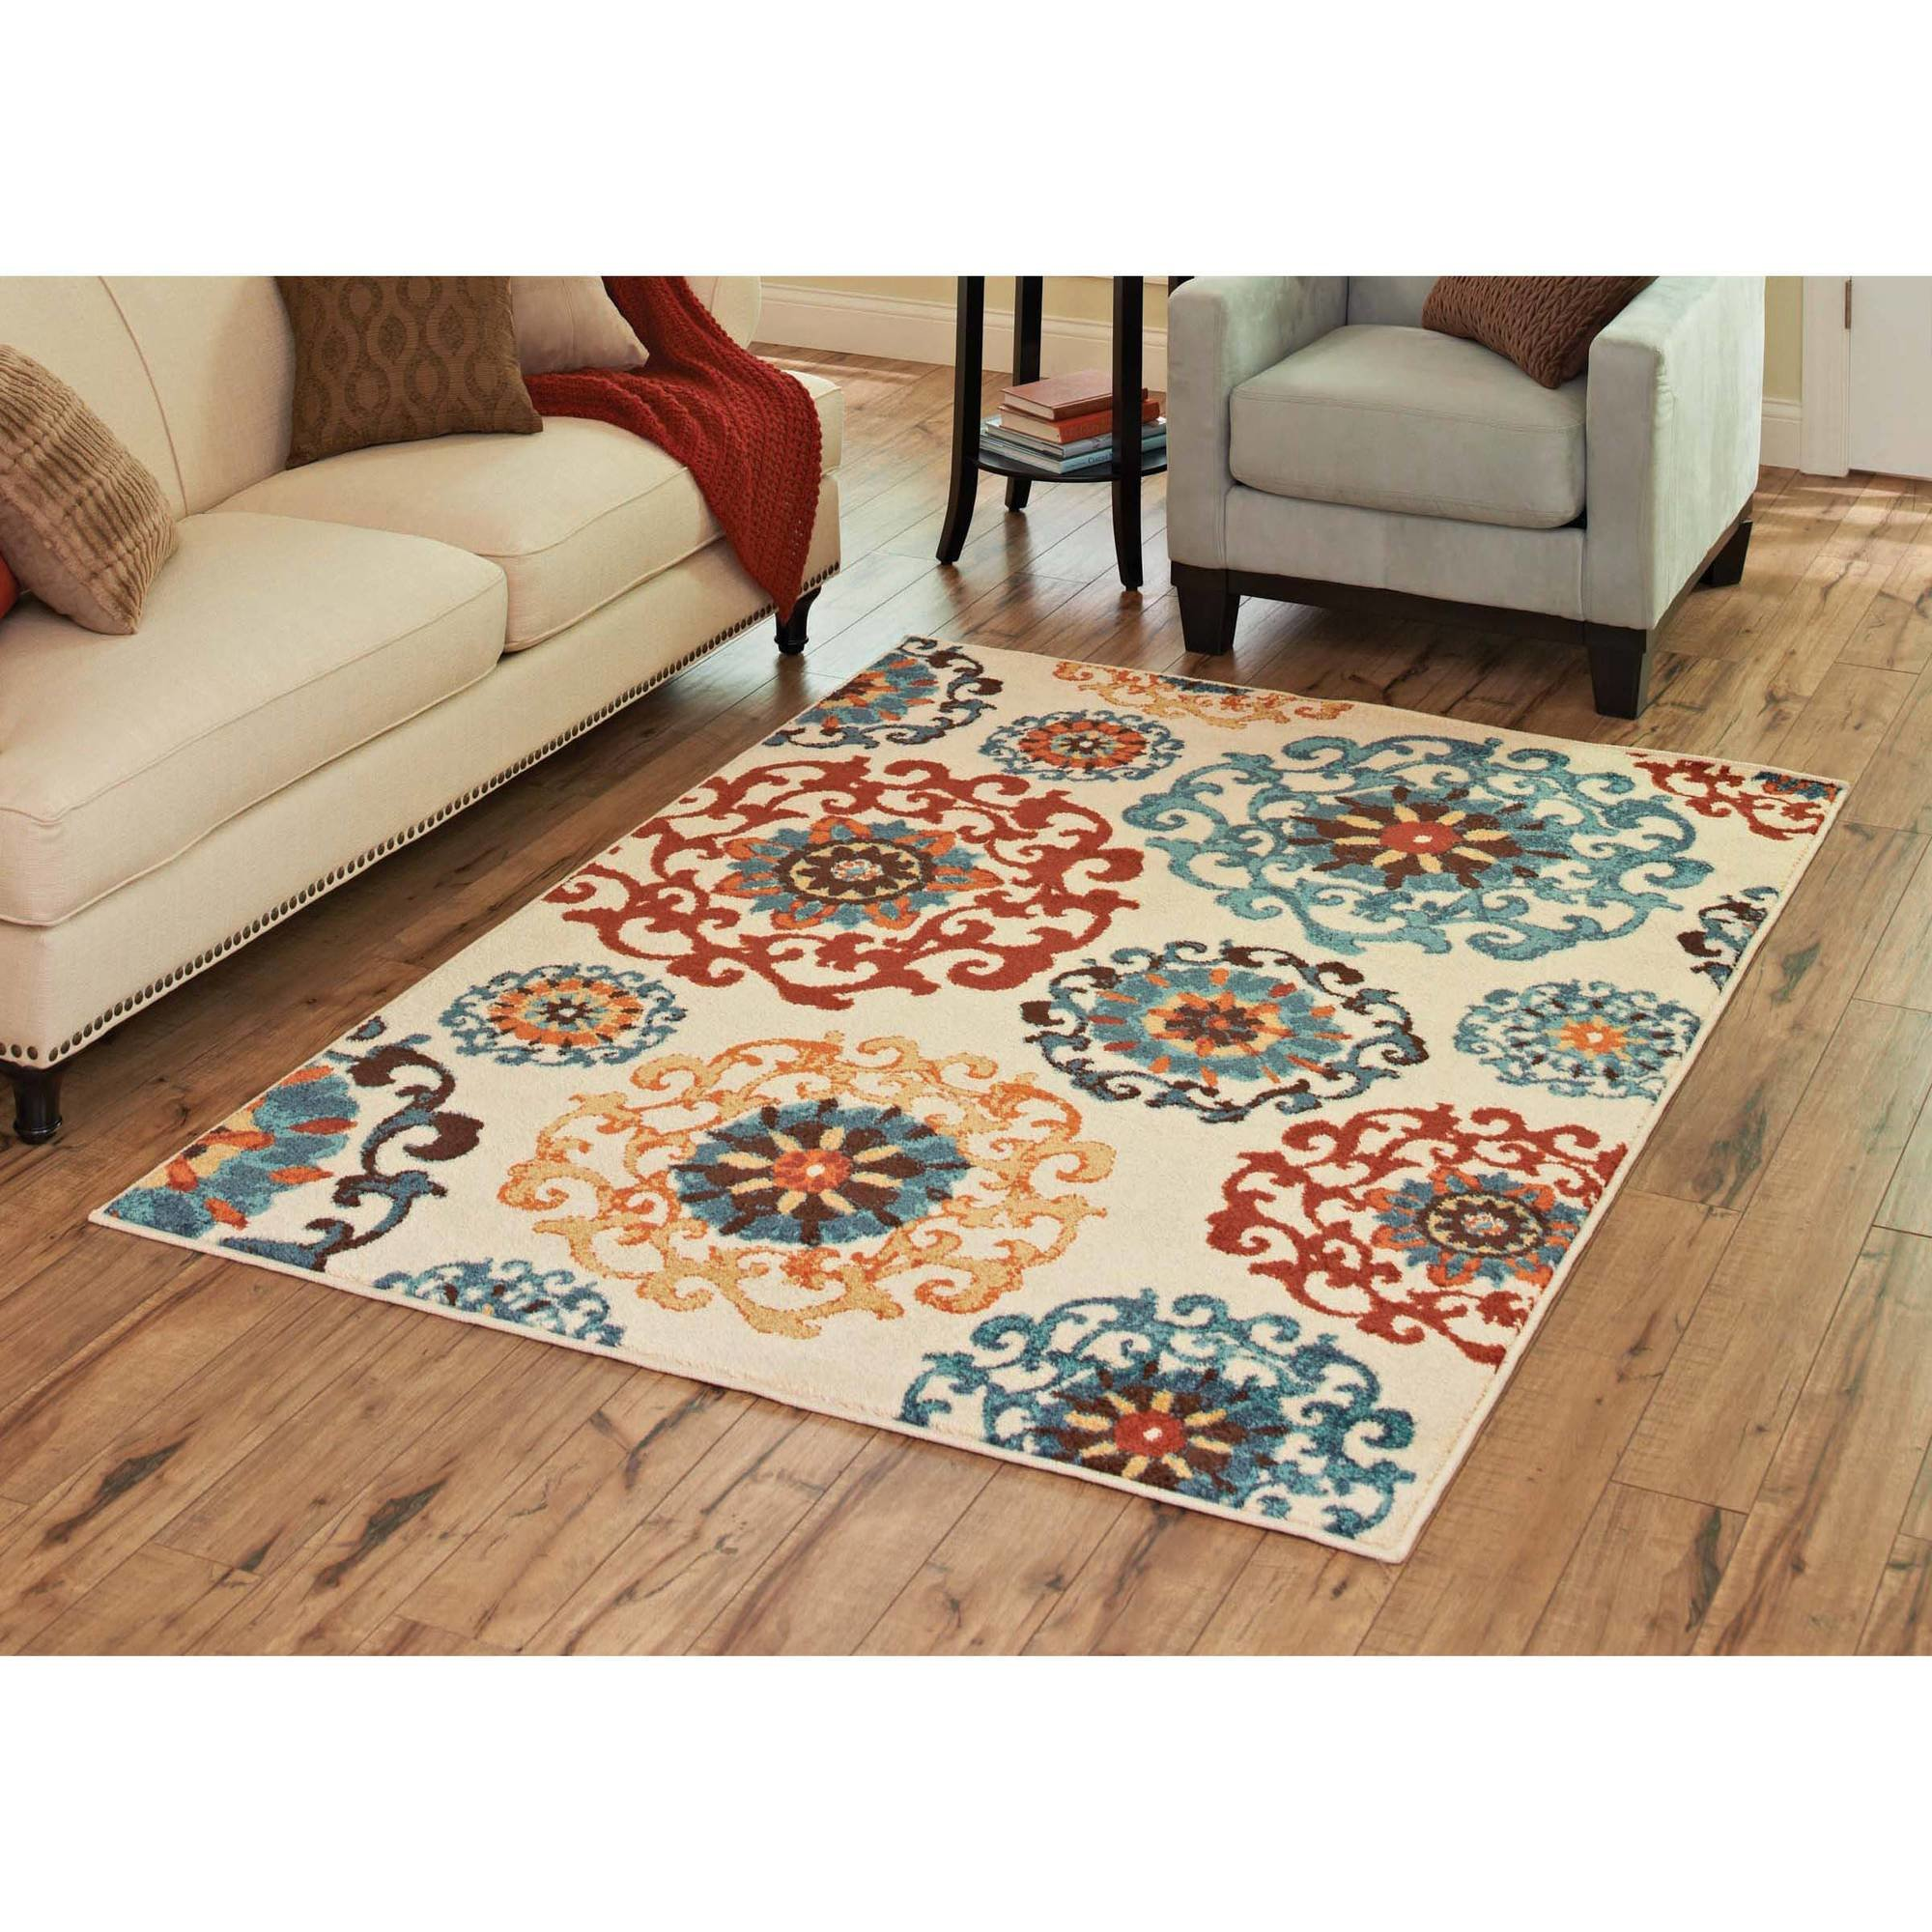 Best Bedroom Rugs Walmart Com With Pictures